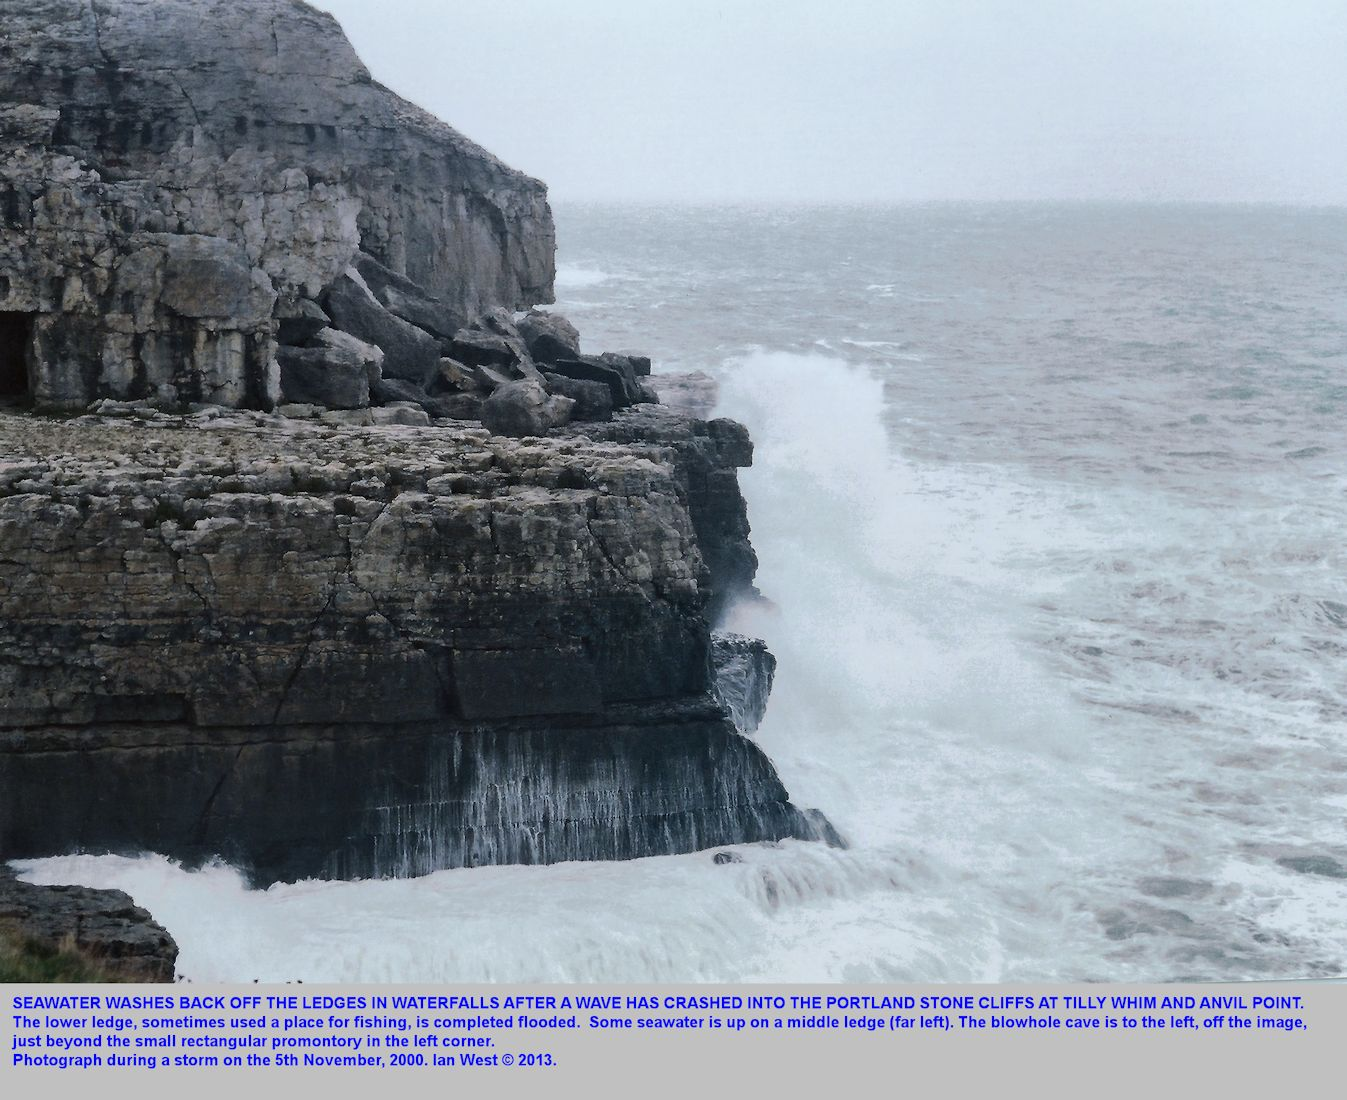 Backwash of seawater from a breaking wave at the lower ledge, Anvil Point, near Swanage, Dorset, 5th November 2000